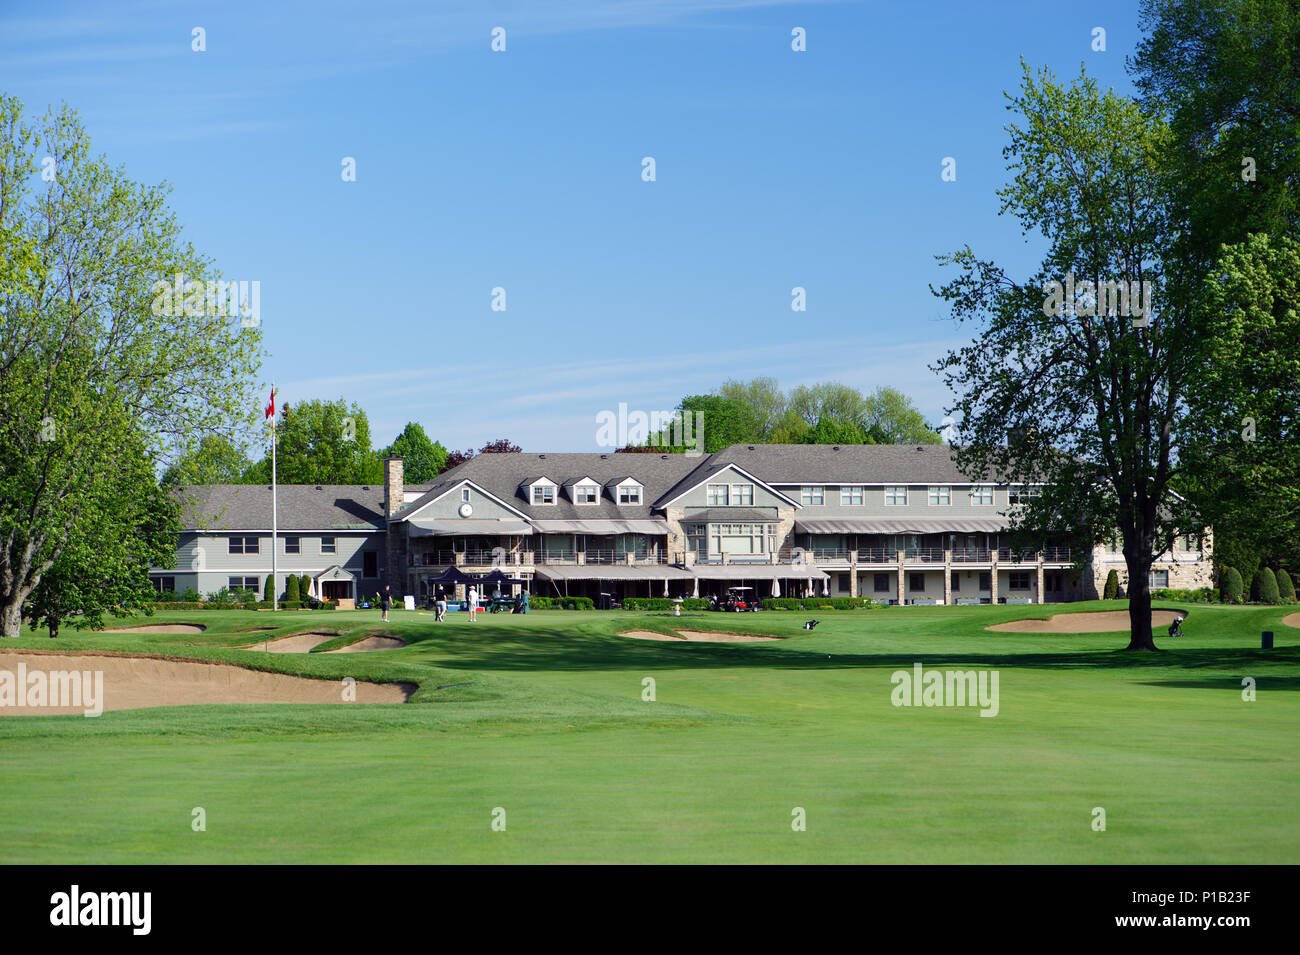 View of a green and of the expansive clubhouse of the exclusive Royal Montreal Golf Club, Ïle Bizard, province of Quebec, Canada. - Stock Image